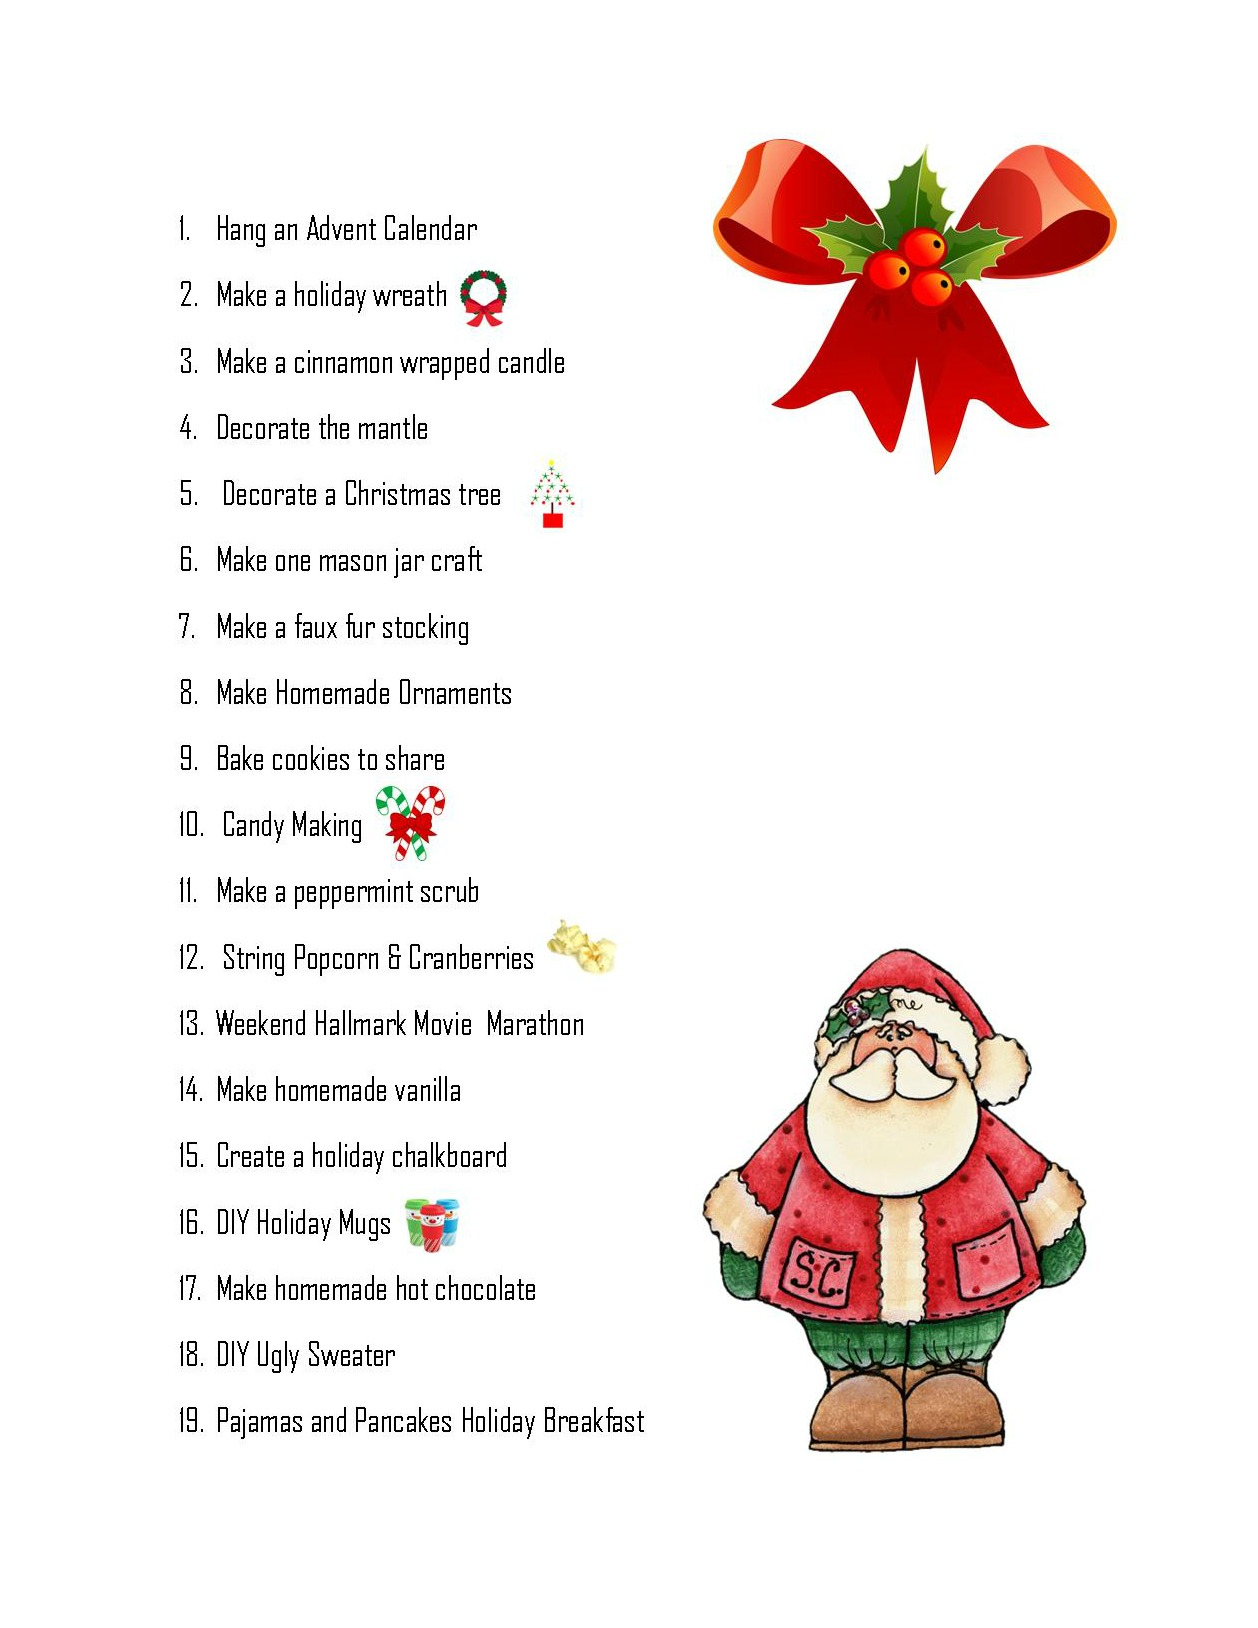 Christmas Bucket List For Families (Free Printable)